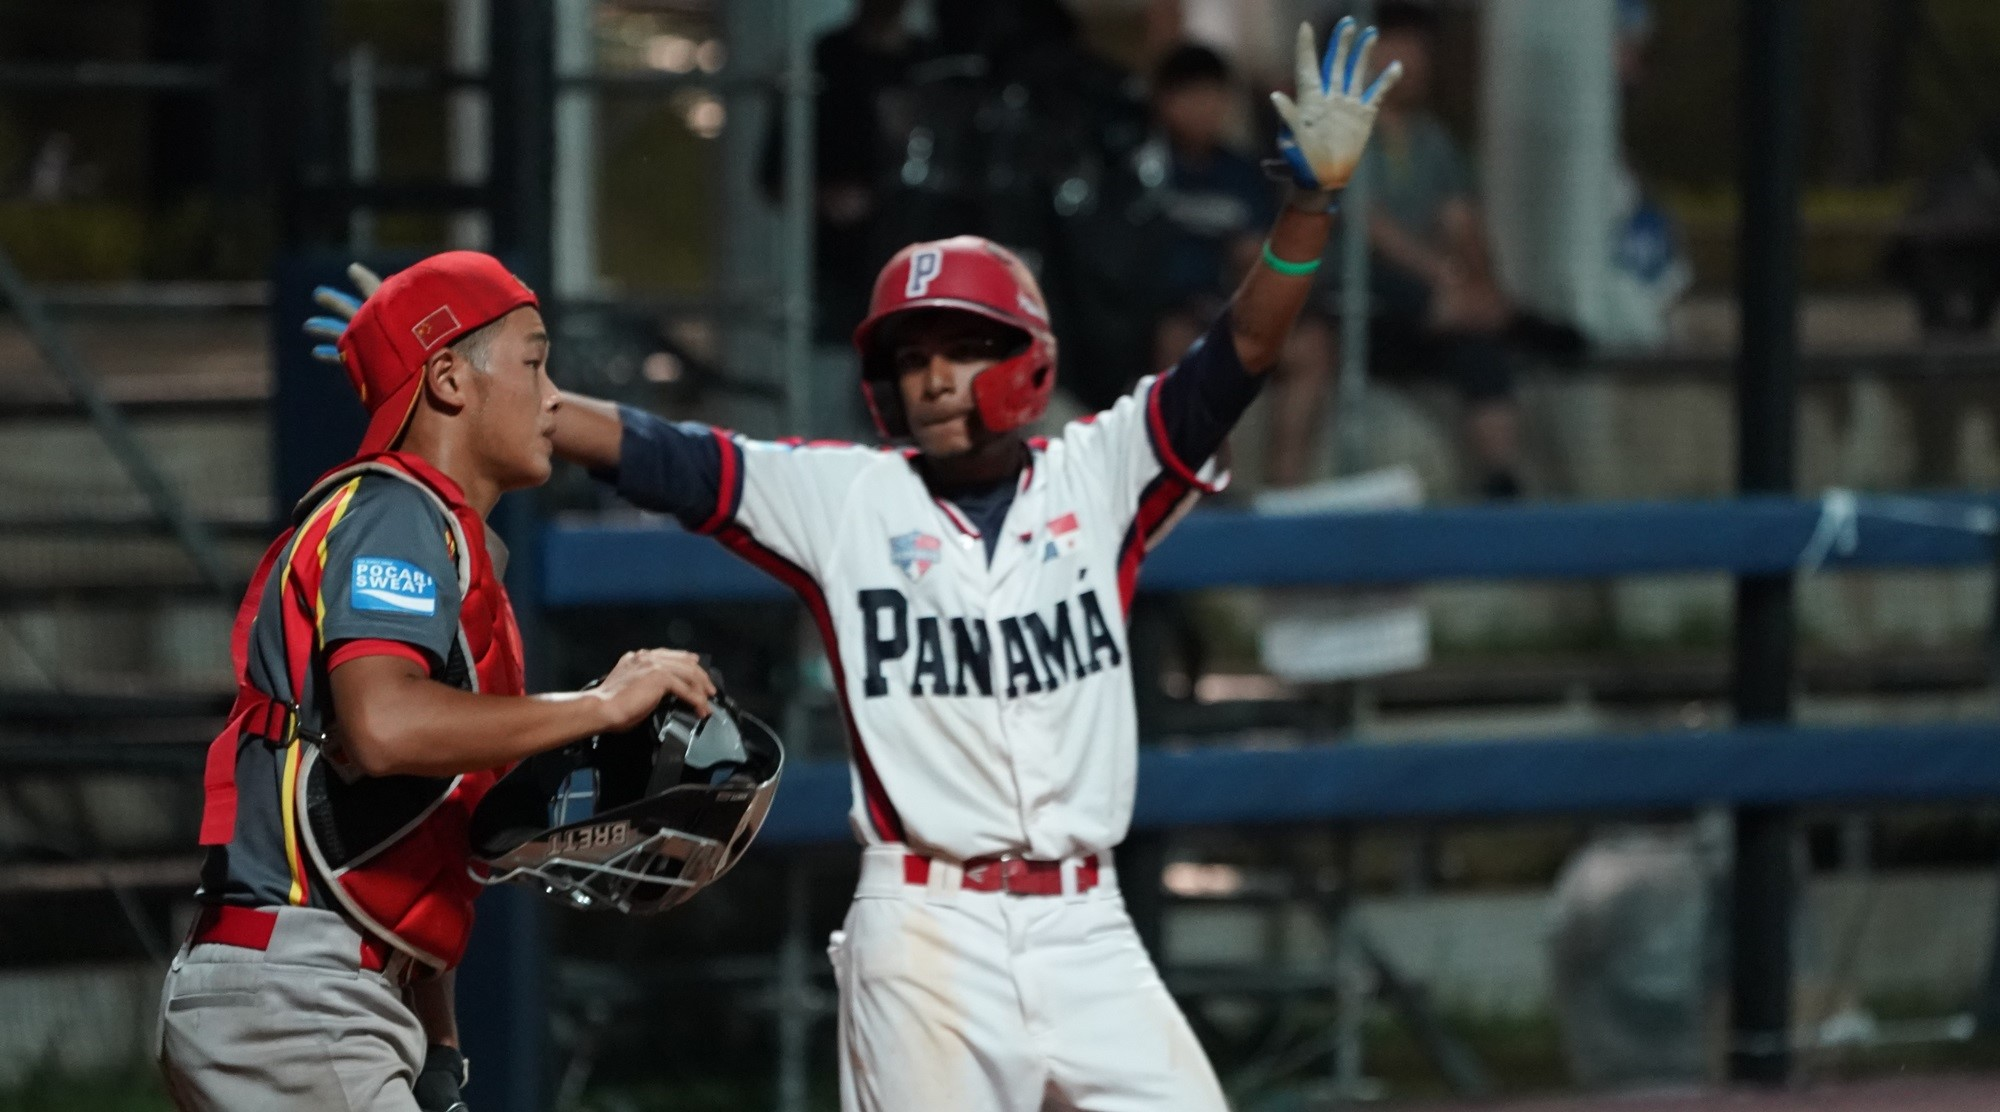 Panama needed the win to finish ahead of China